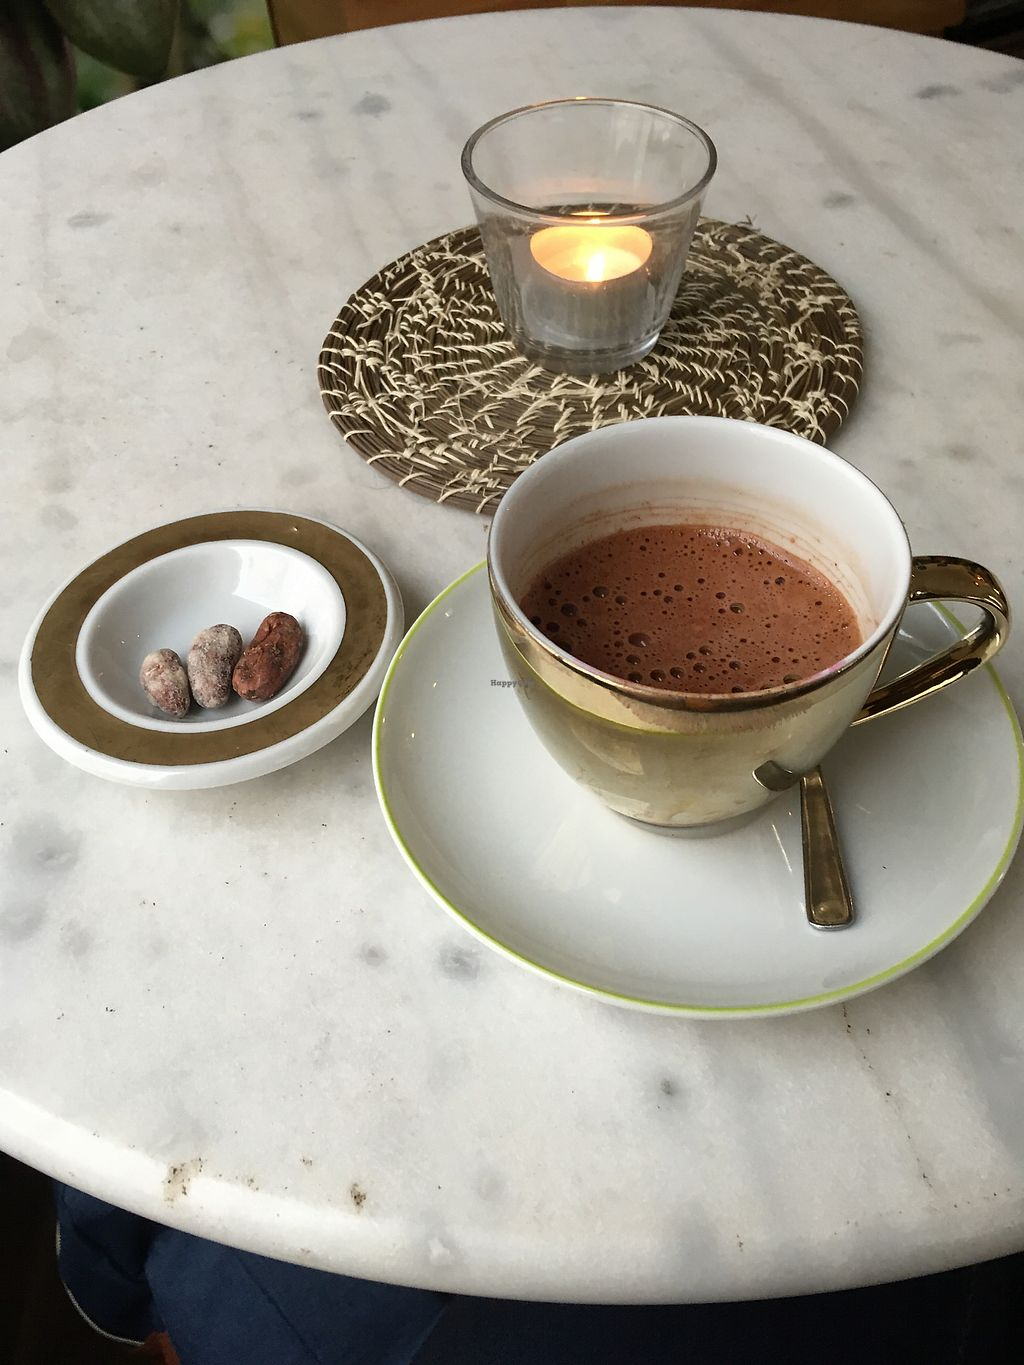 """Photo of Belyzium Artisan Chocolate  by <a href=""""/members/profile/Aim%C3%A9eCarolynRoss"""">AiméeCarolynRoss</a> <br/>Vegan hot chocolate with cocoa beans <br/> January 5, 2018  - <a href='/contact/abuse/image/95748/343268'>Report</a>"""